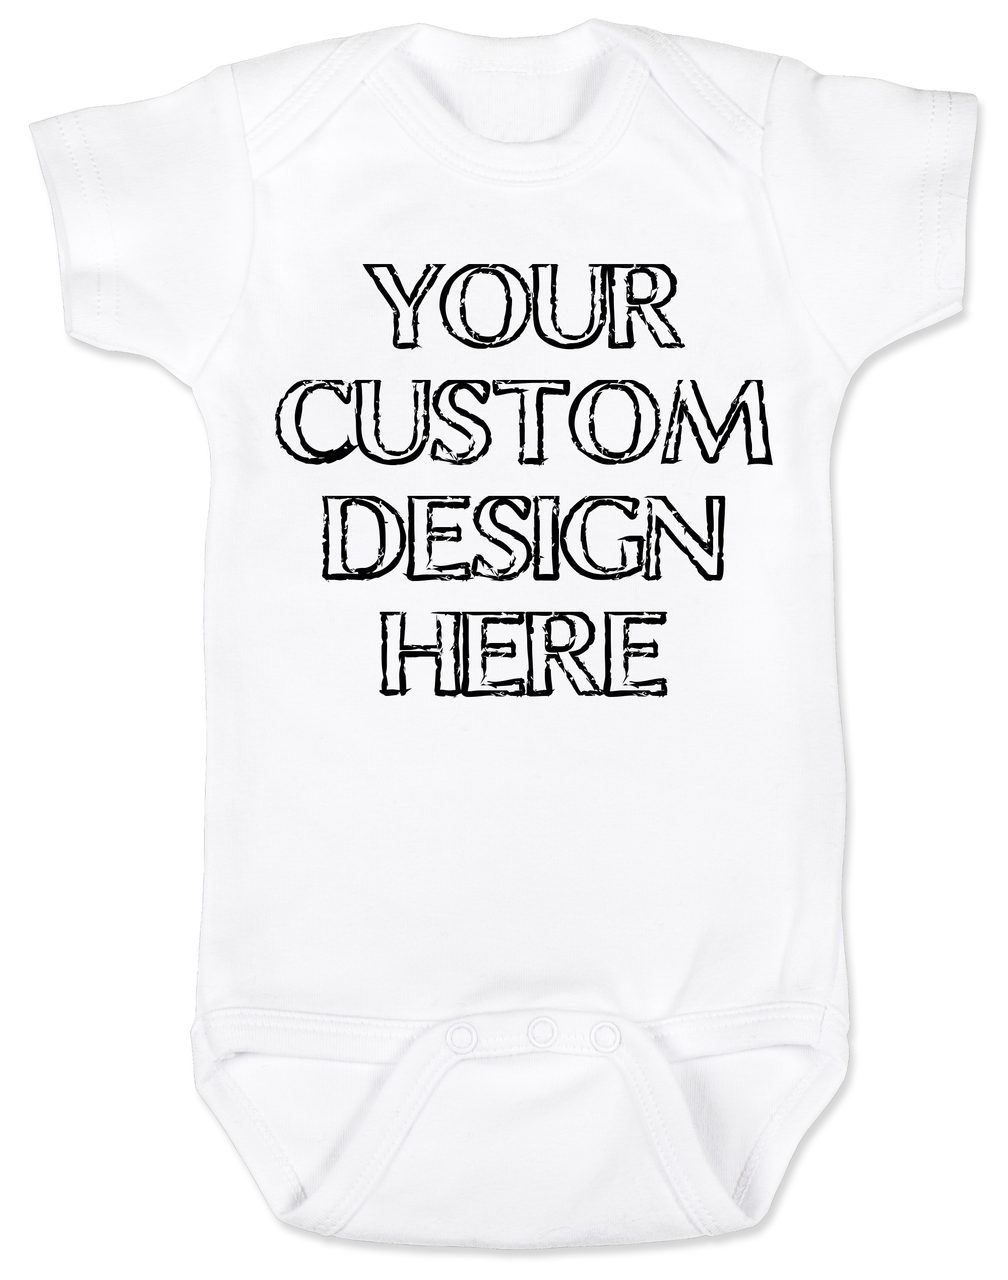 b3bf67864 Design your own custom baby Bodysuit, create your own infant bodysuit,  Personalized baby onsie